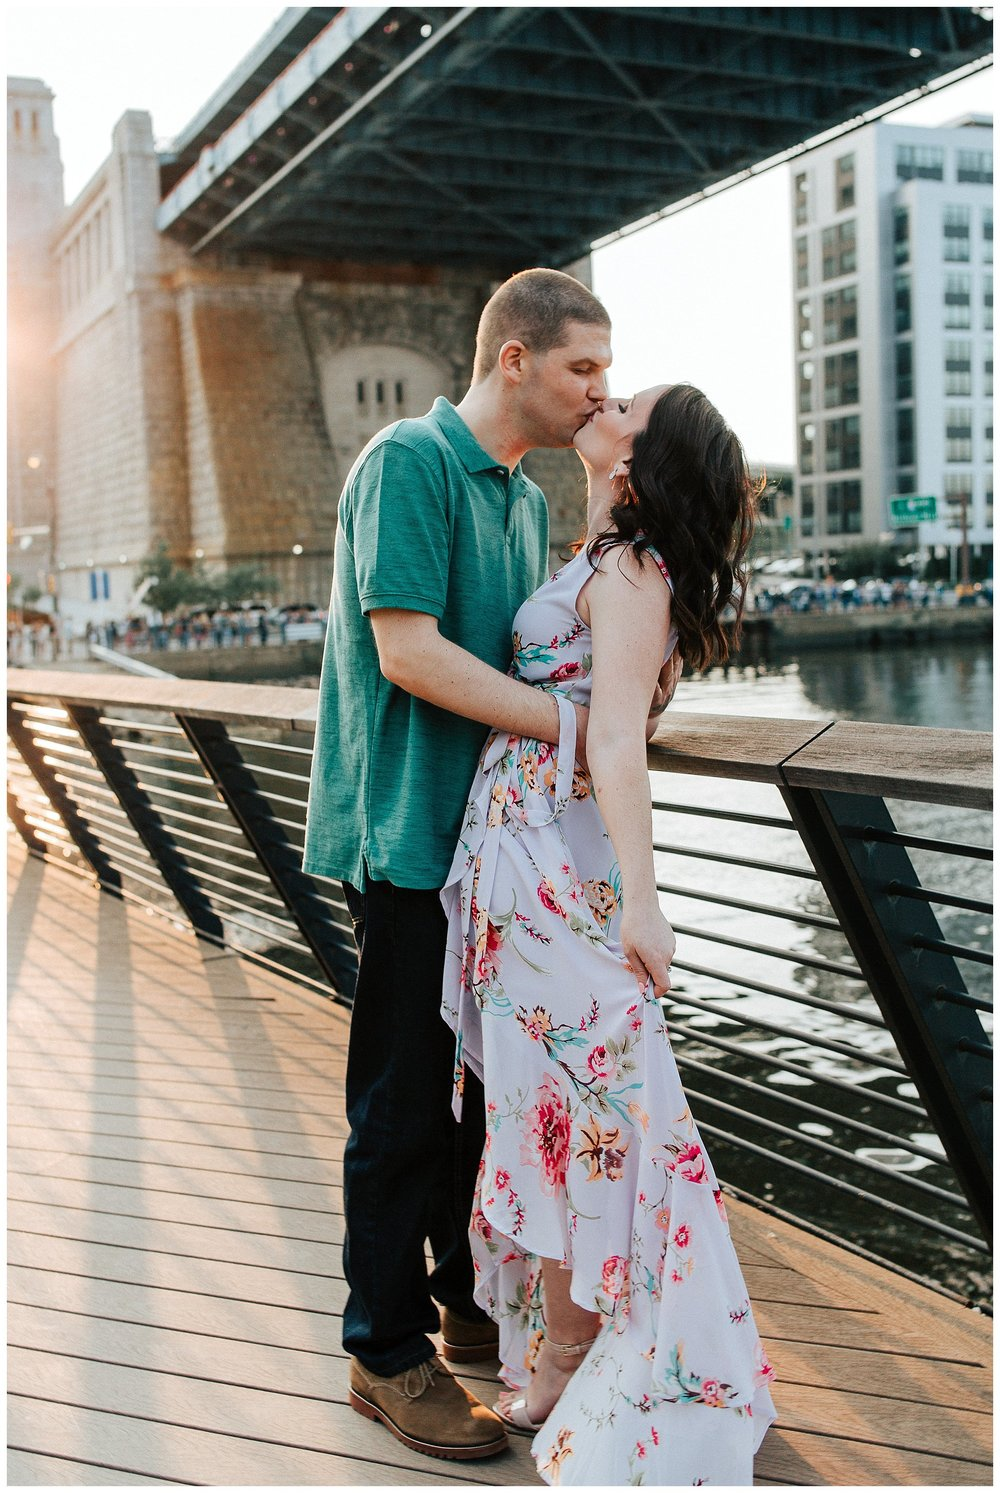 Francesca and Peter Engagement- Blog Feature 15b.jpg